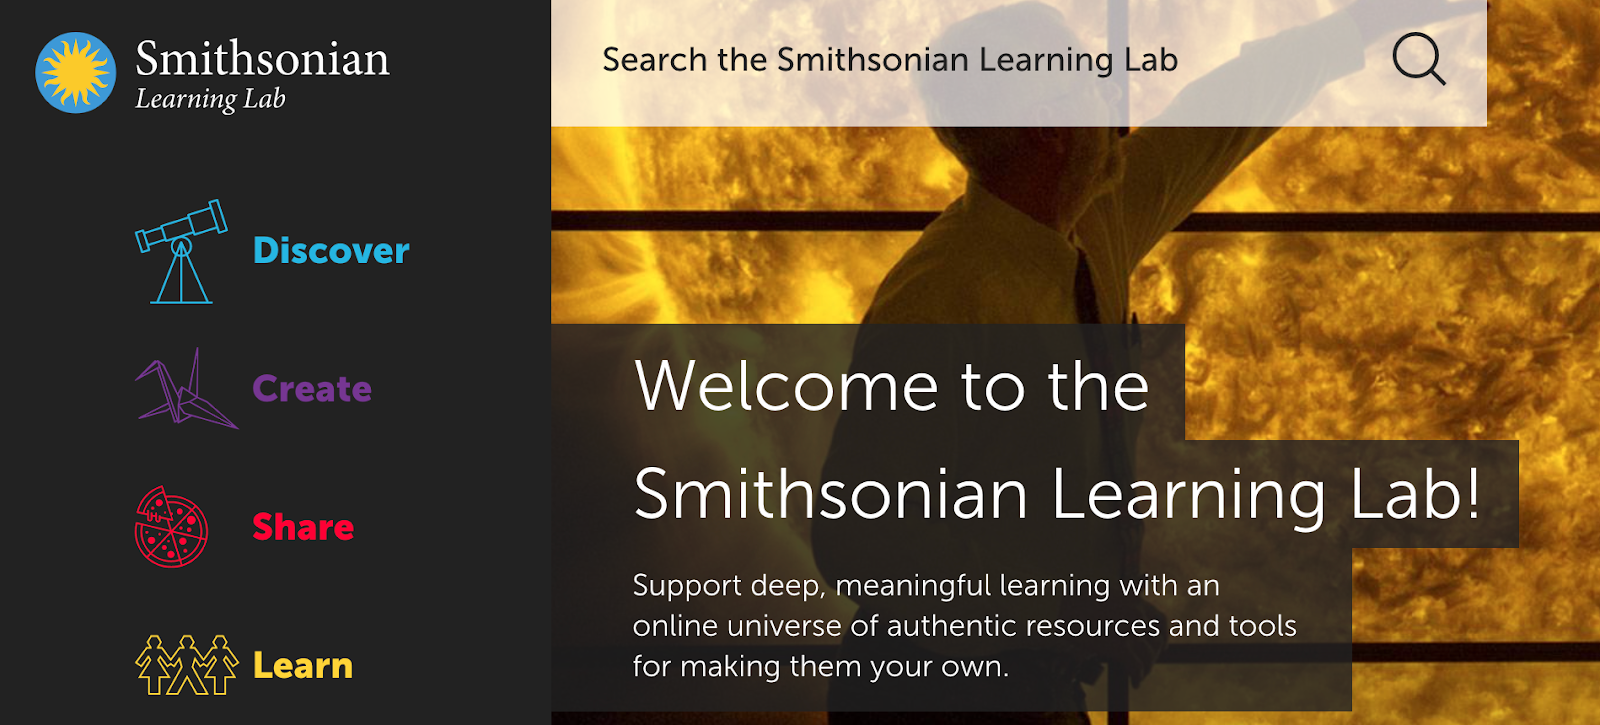 Image of Smithsonian Learning Labs welcome screen.